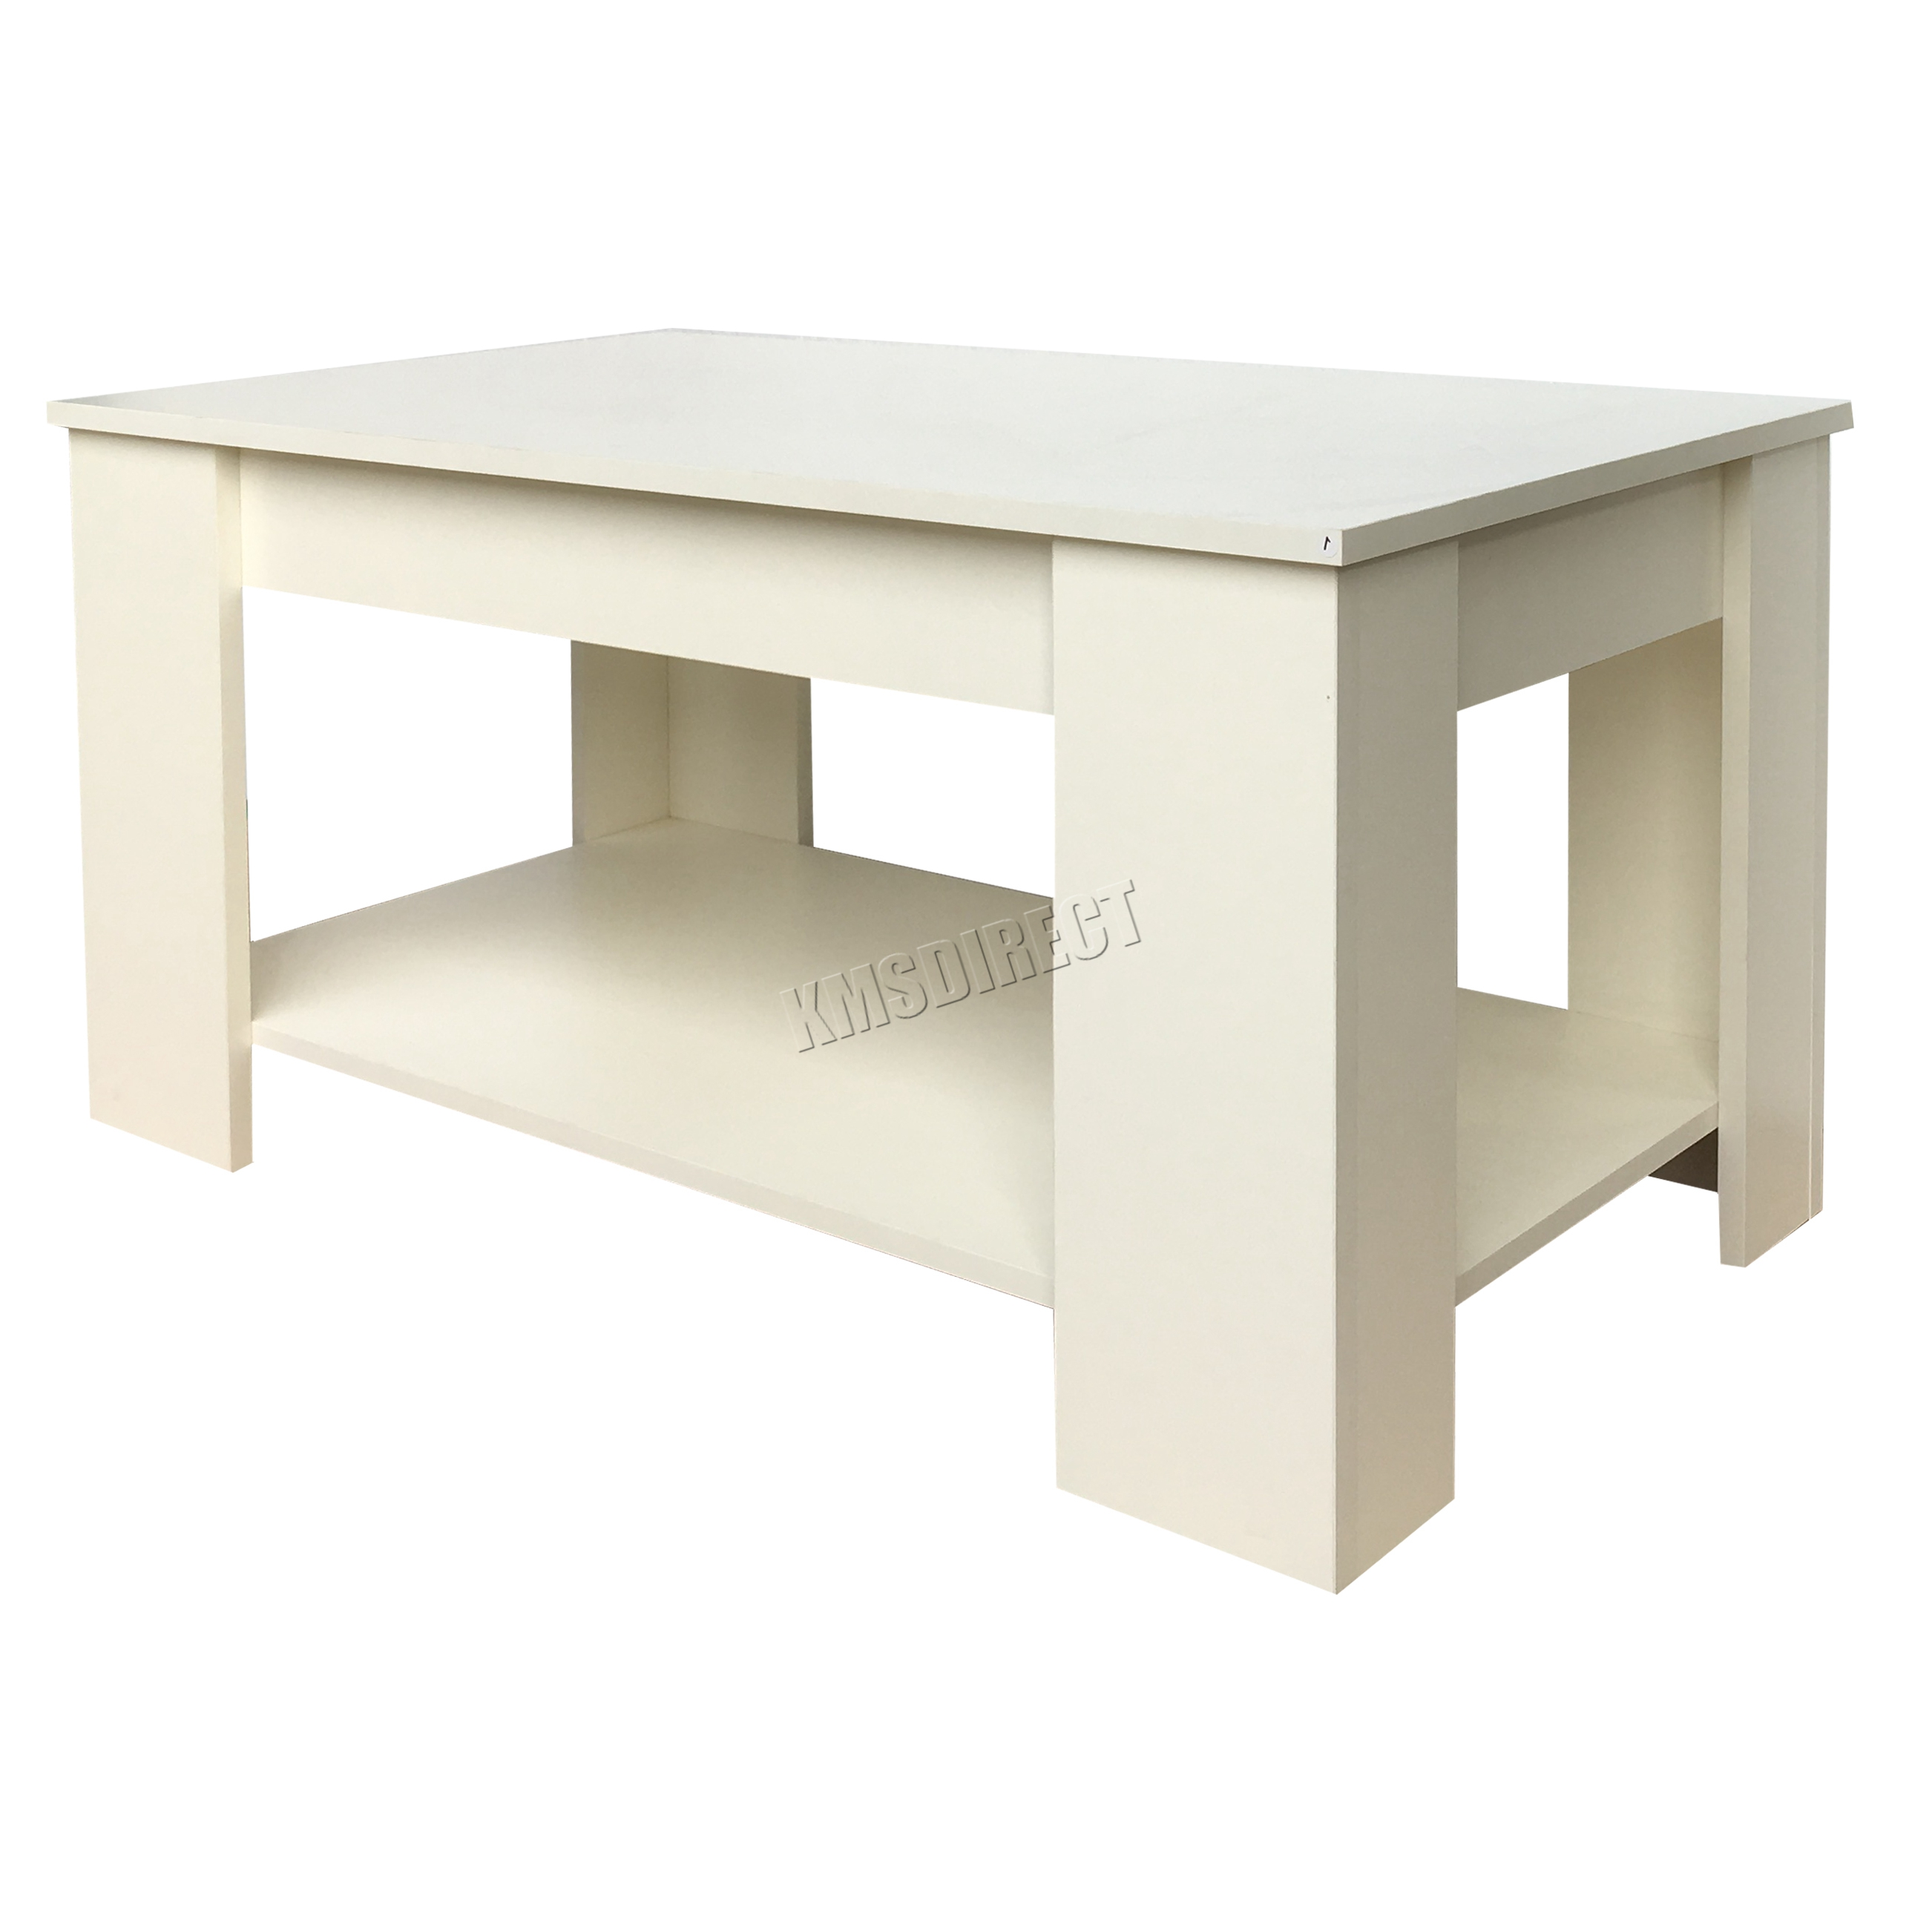 Foxhunter Lift Up Top Coffee Table Mdf With Storage And Shelf Living Room Ct01 Ebay